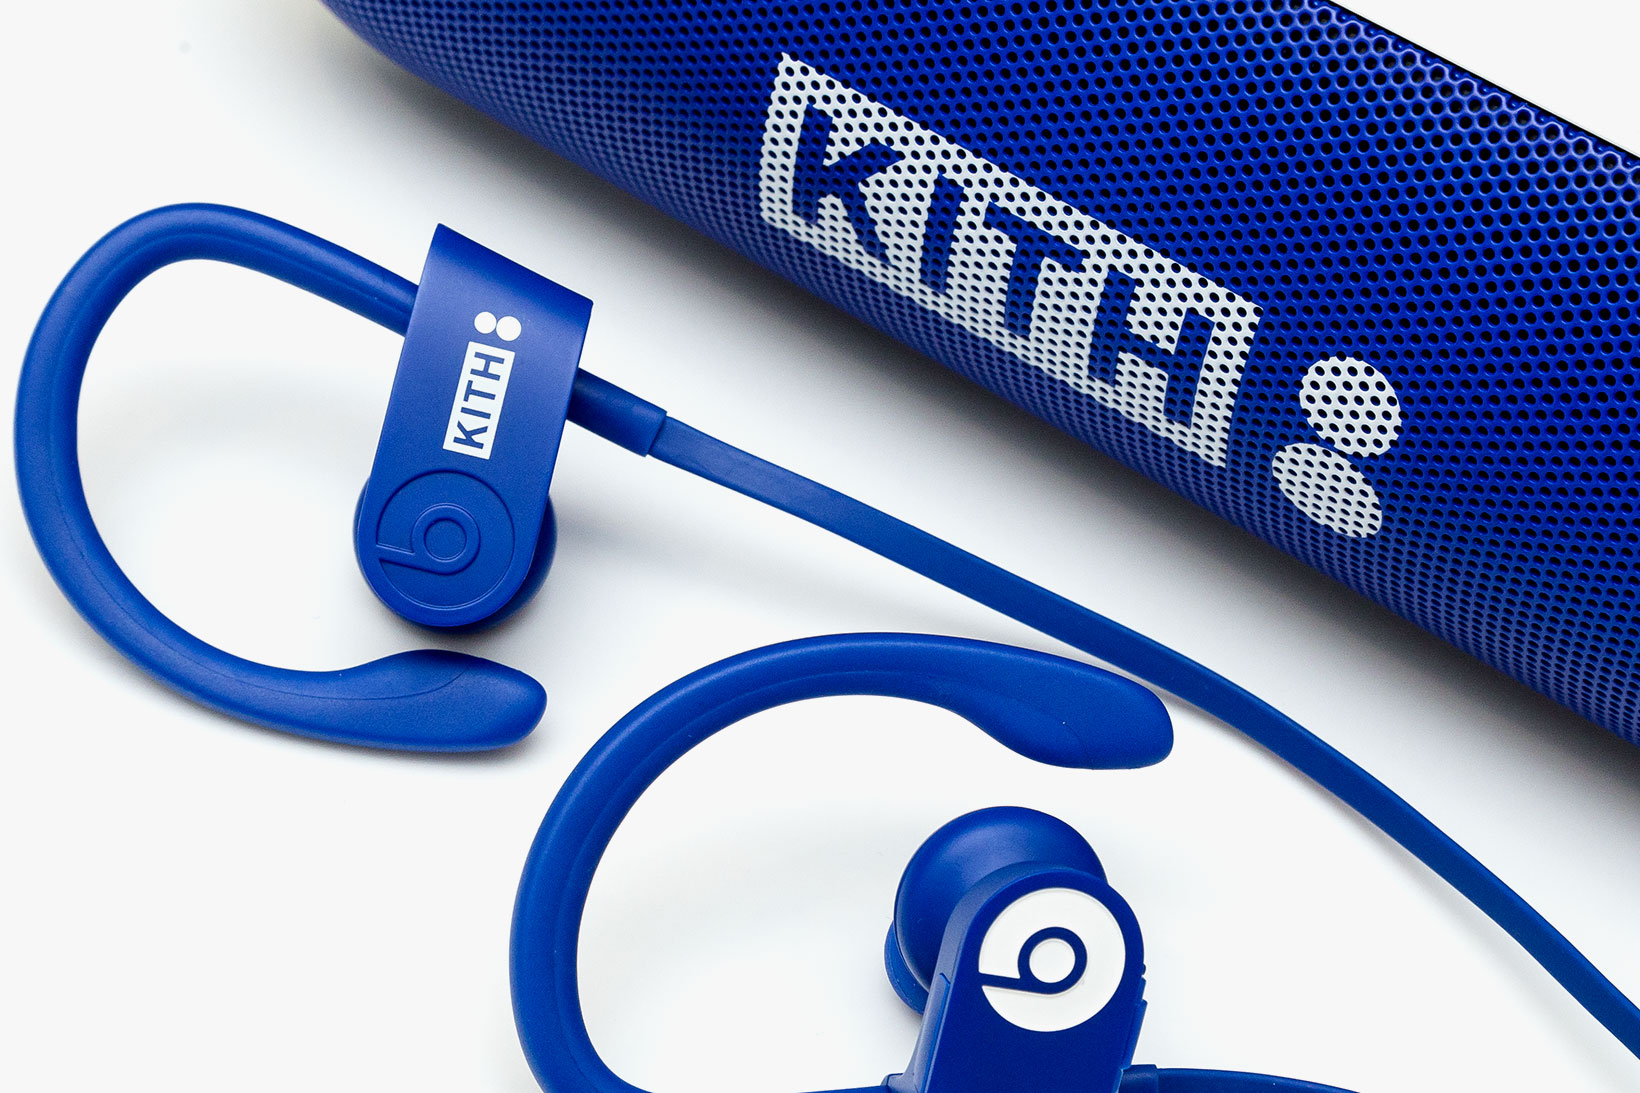 KITH x colette x Beats by Dre Beats Pill+ and Powerbeats2